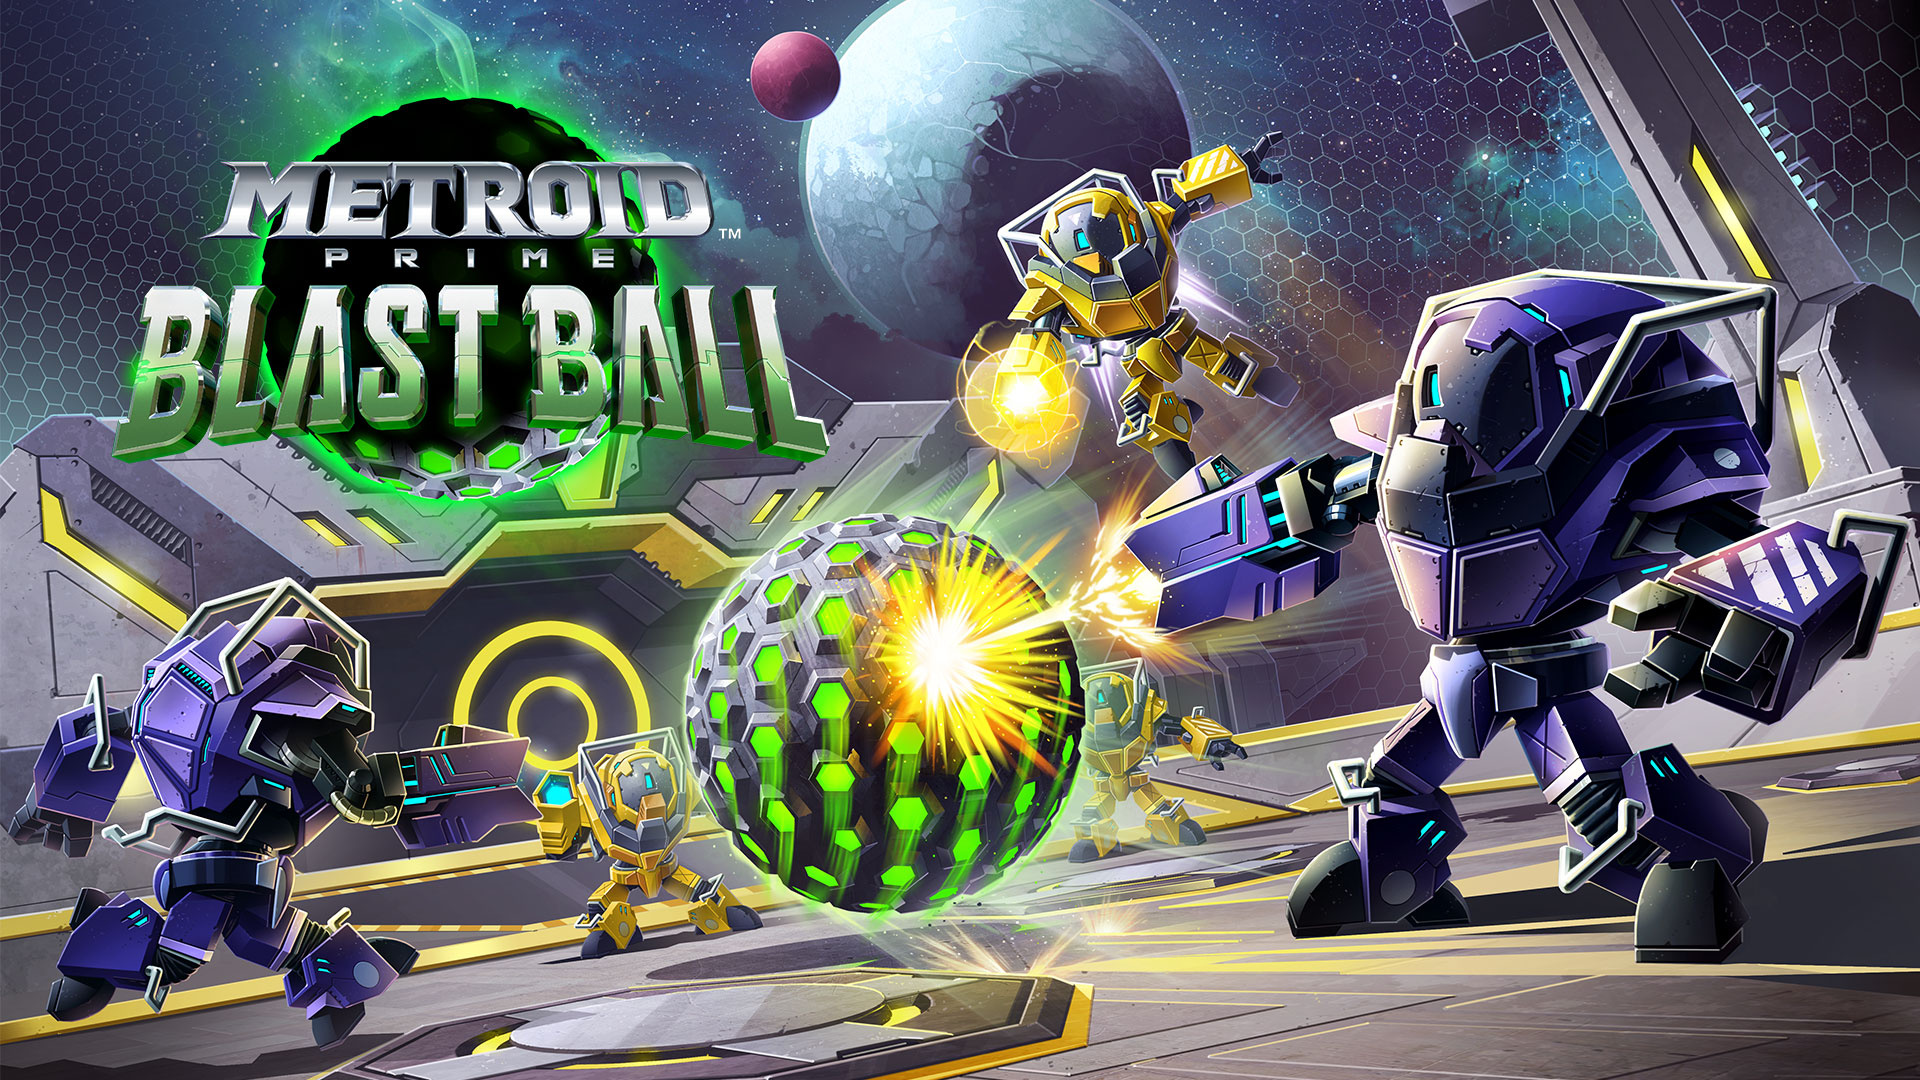 Metroid Prime: Blast Ball Available For Free Right Now